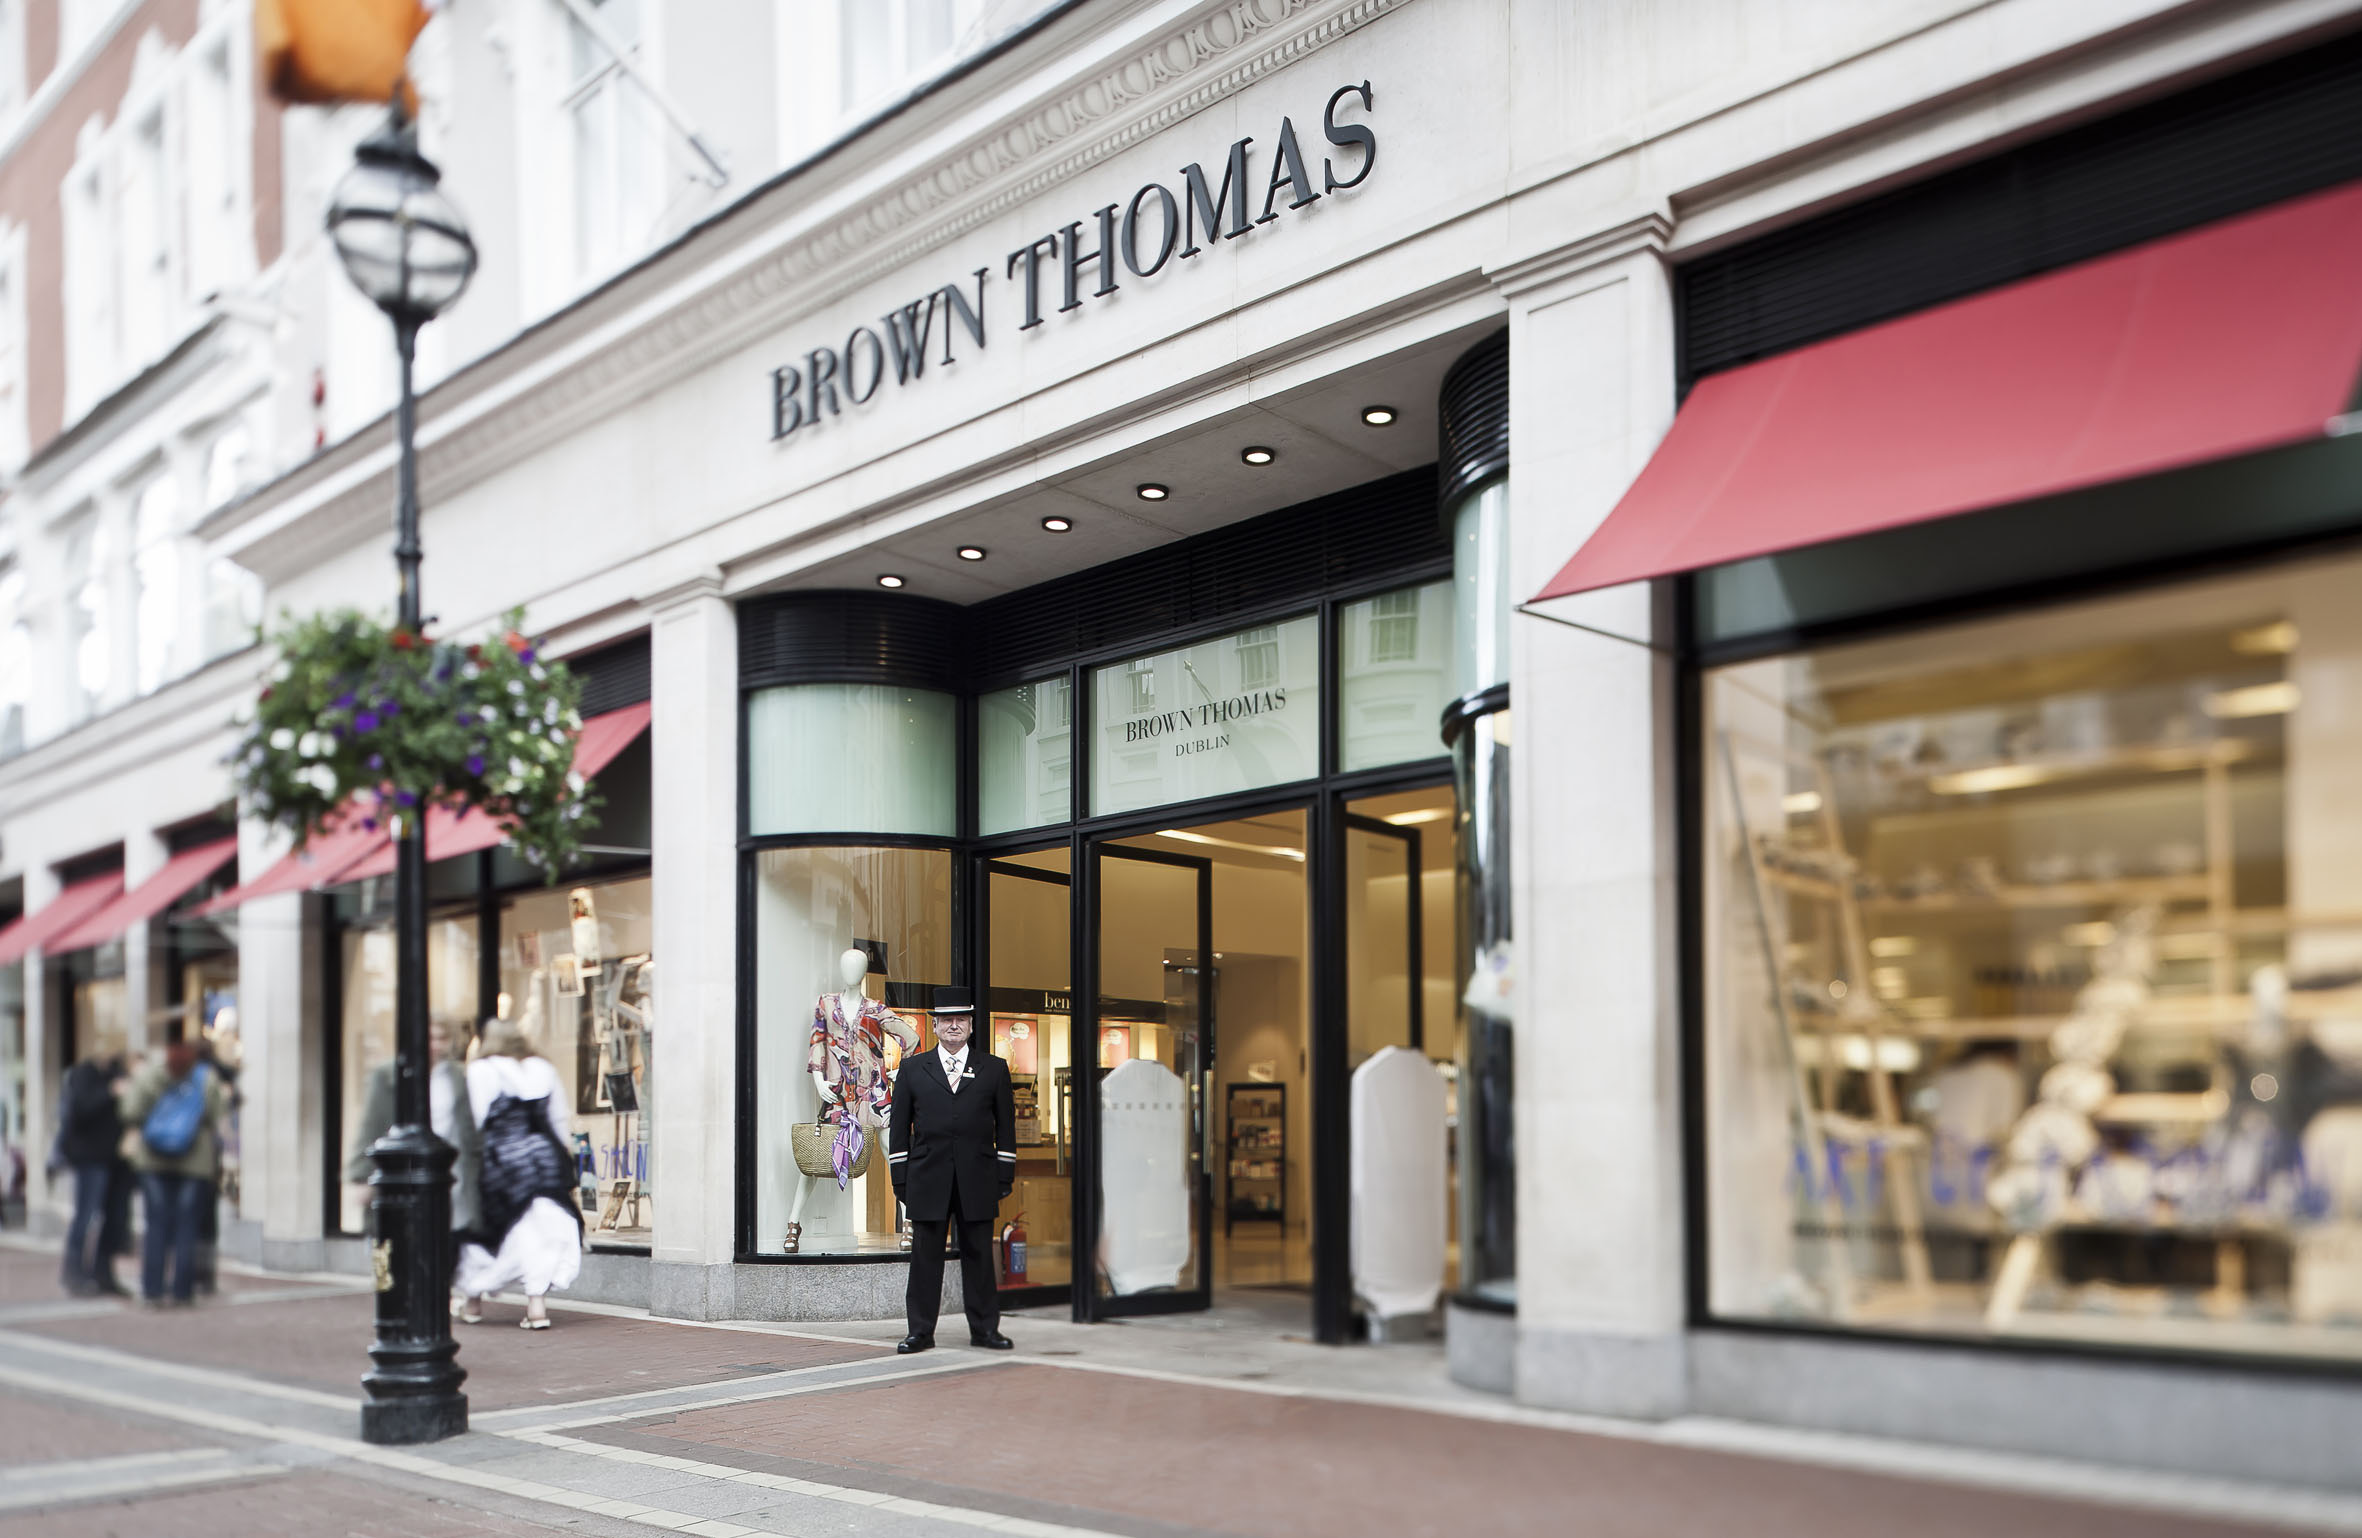 Copy of Brown Thomas